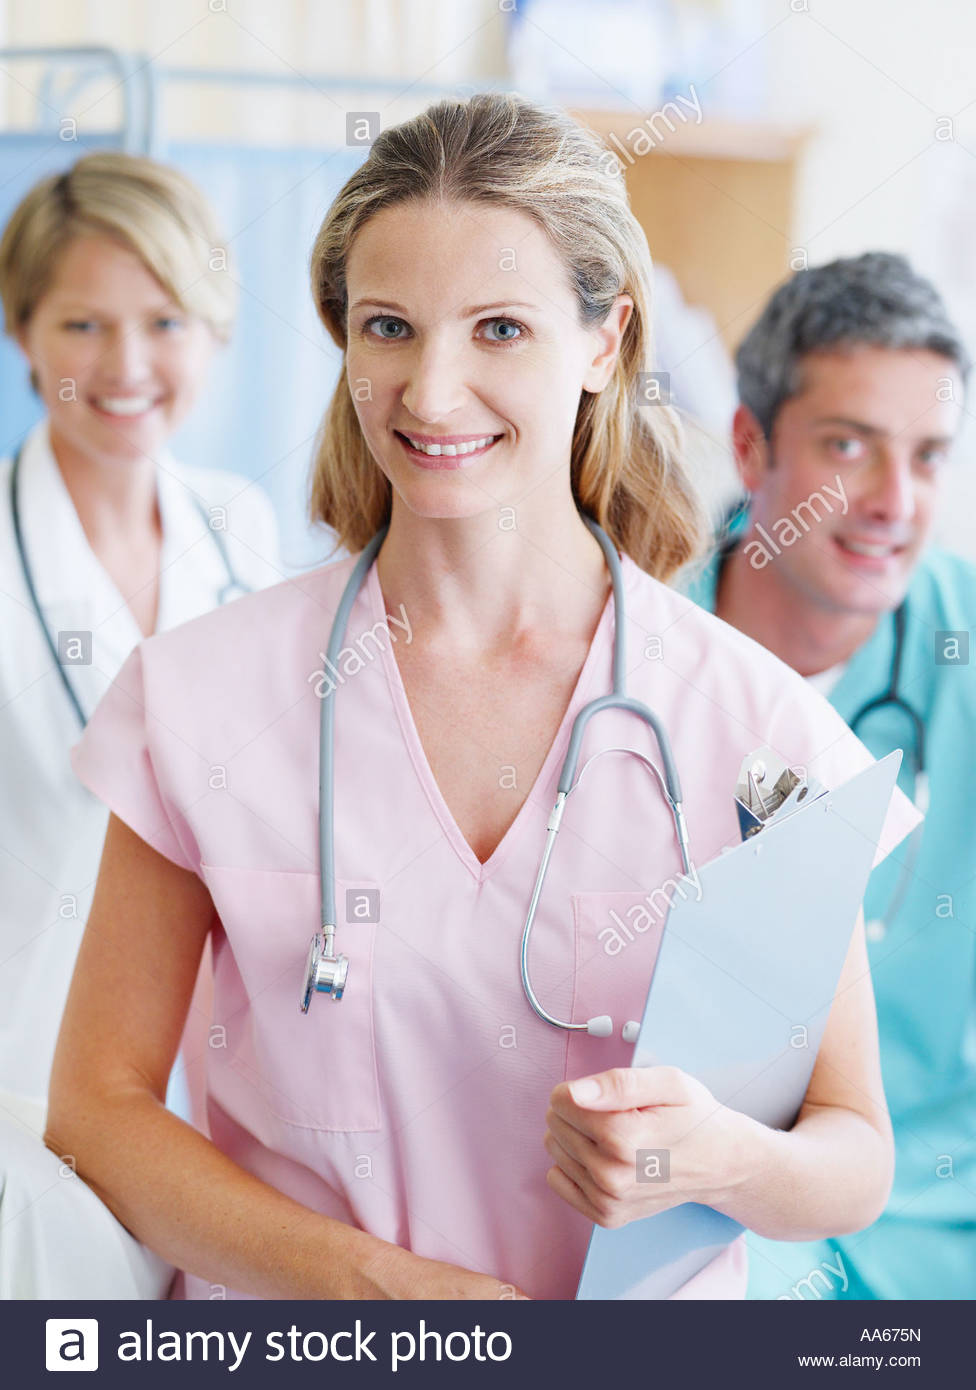 Three hospital workers smiling - Stock Image